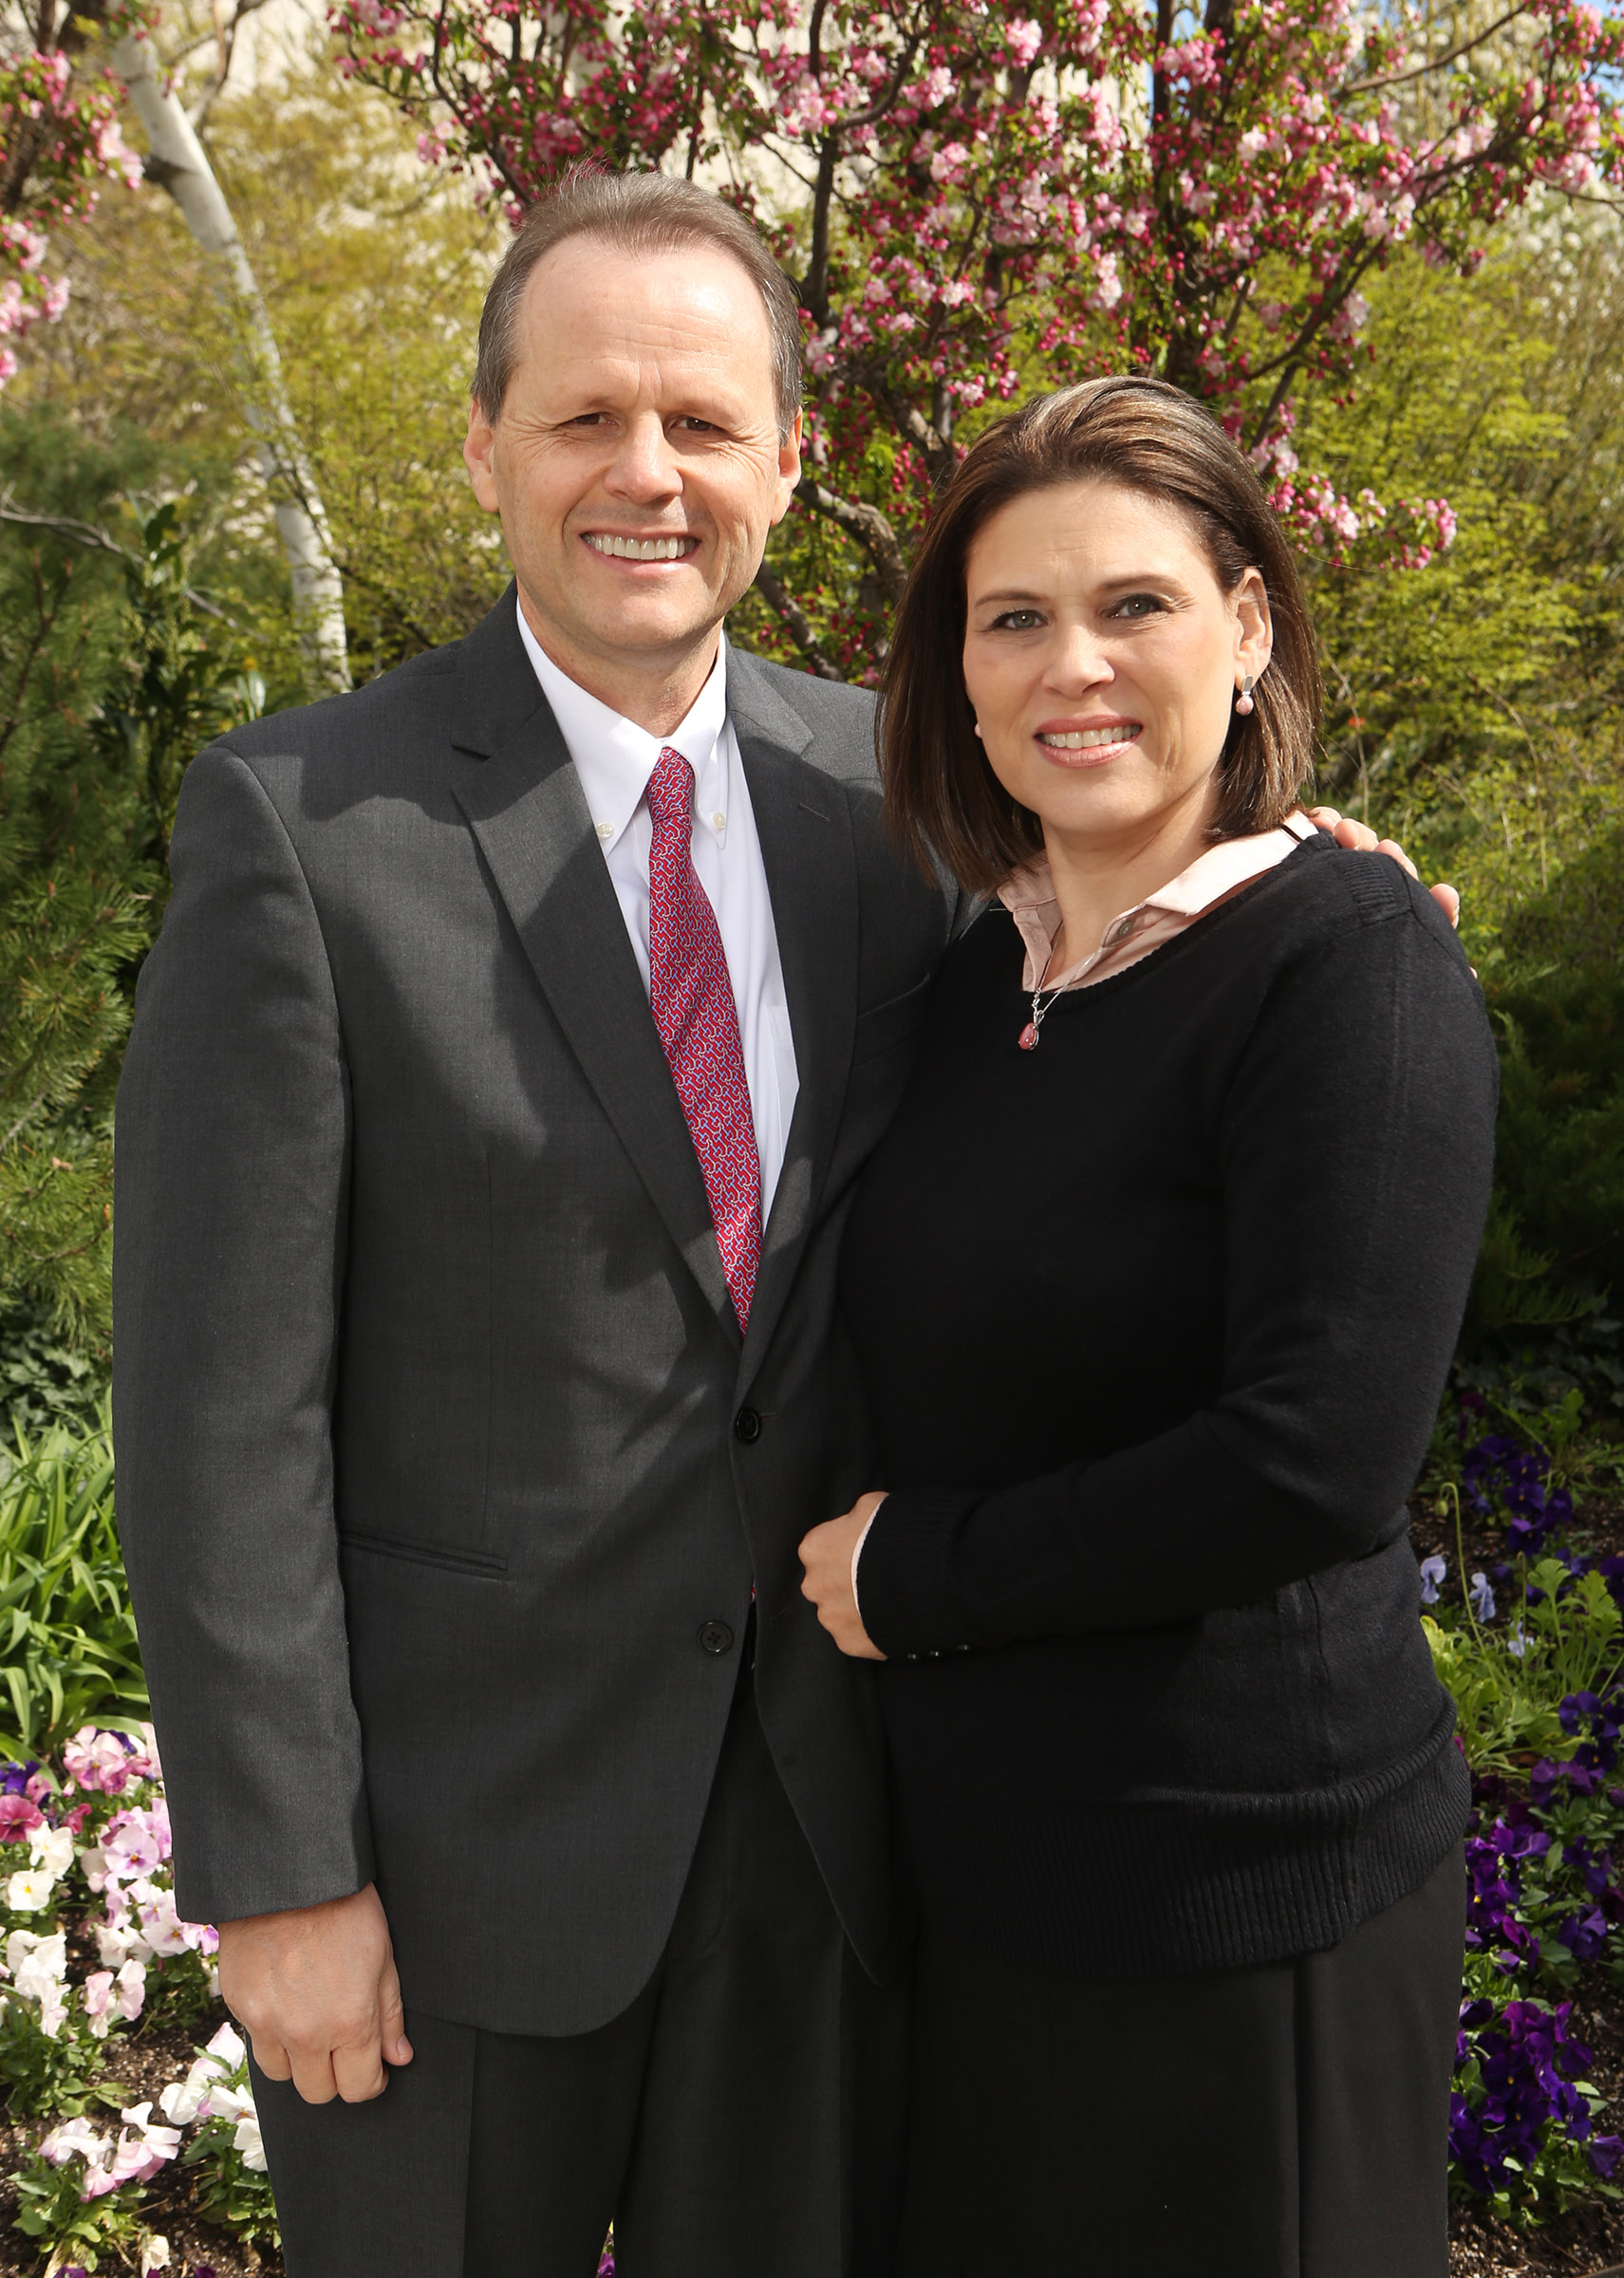 Elder Joni L Koch with his wife, Sister Liliane Michele Ludwig.